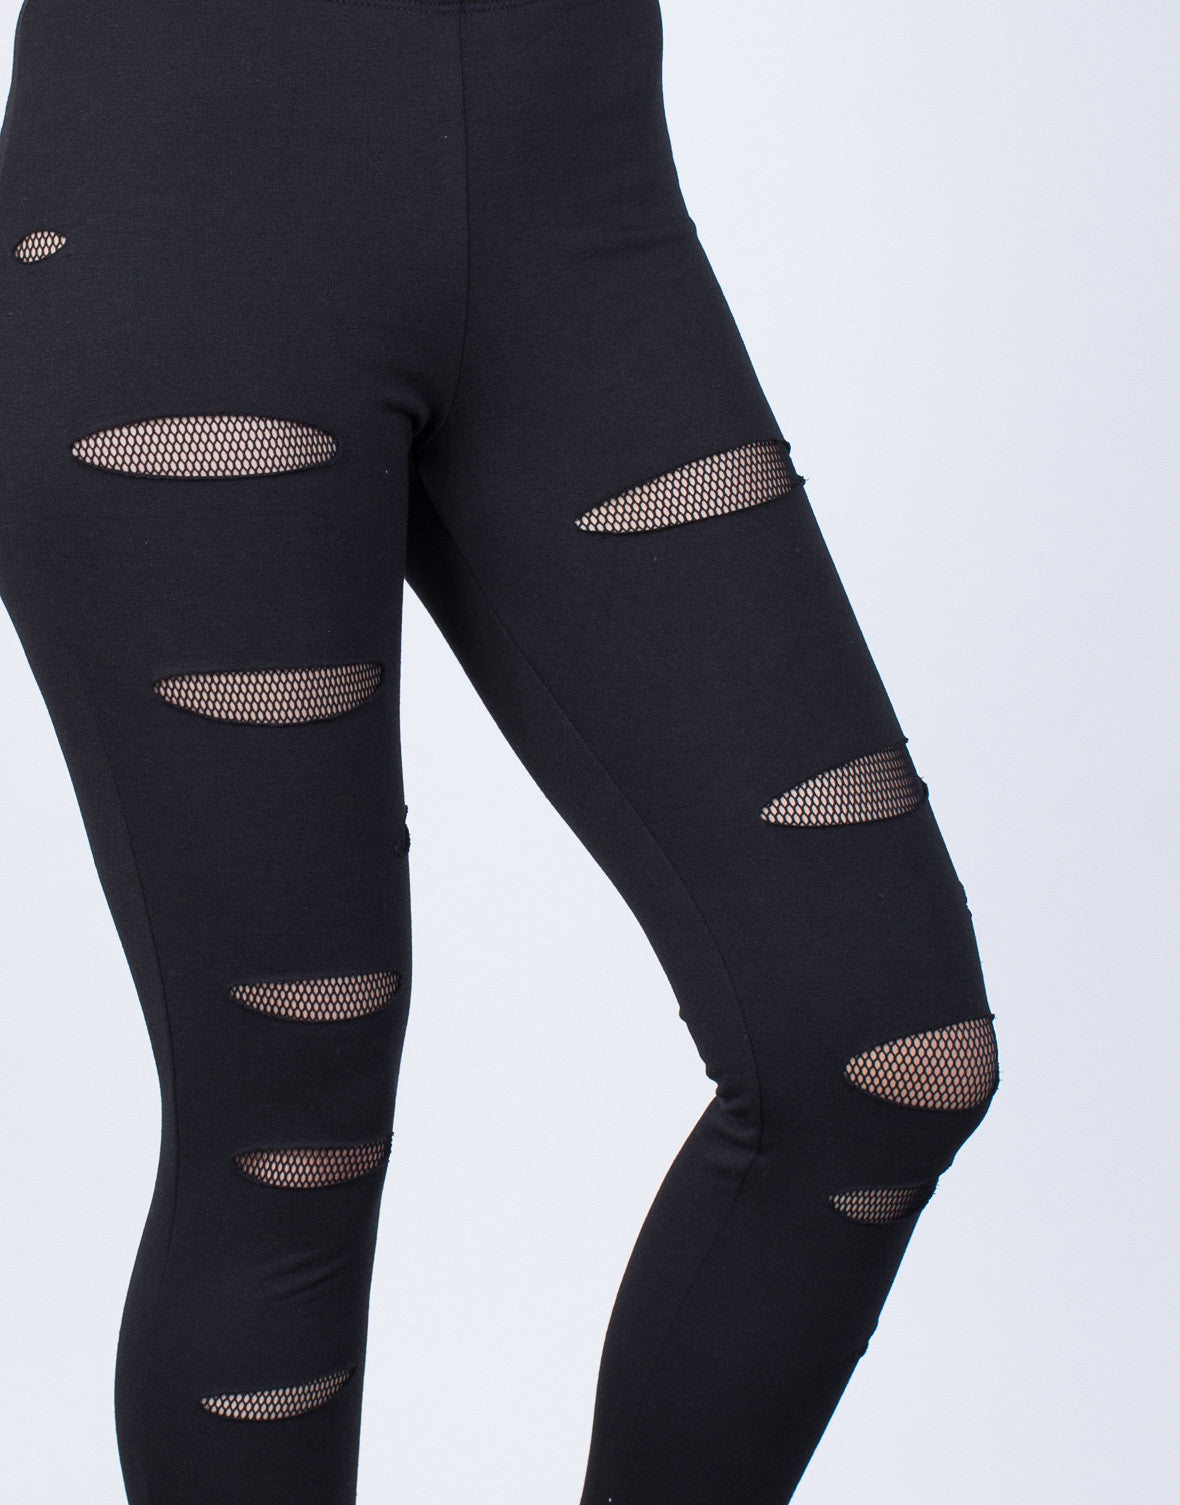 Detail of See Through Net Joggers